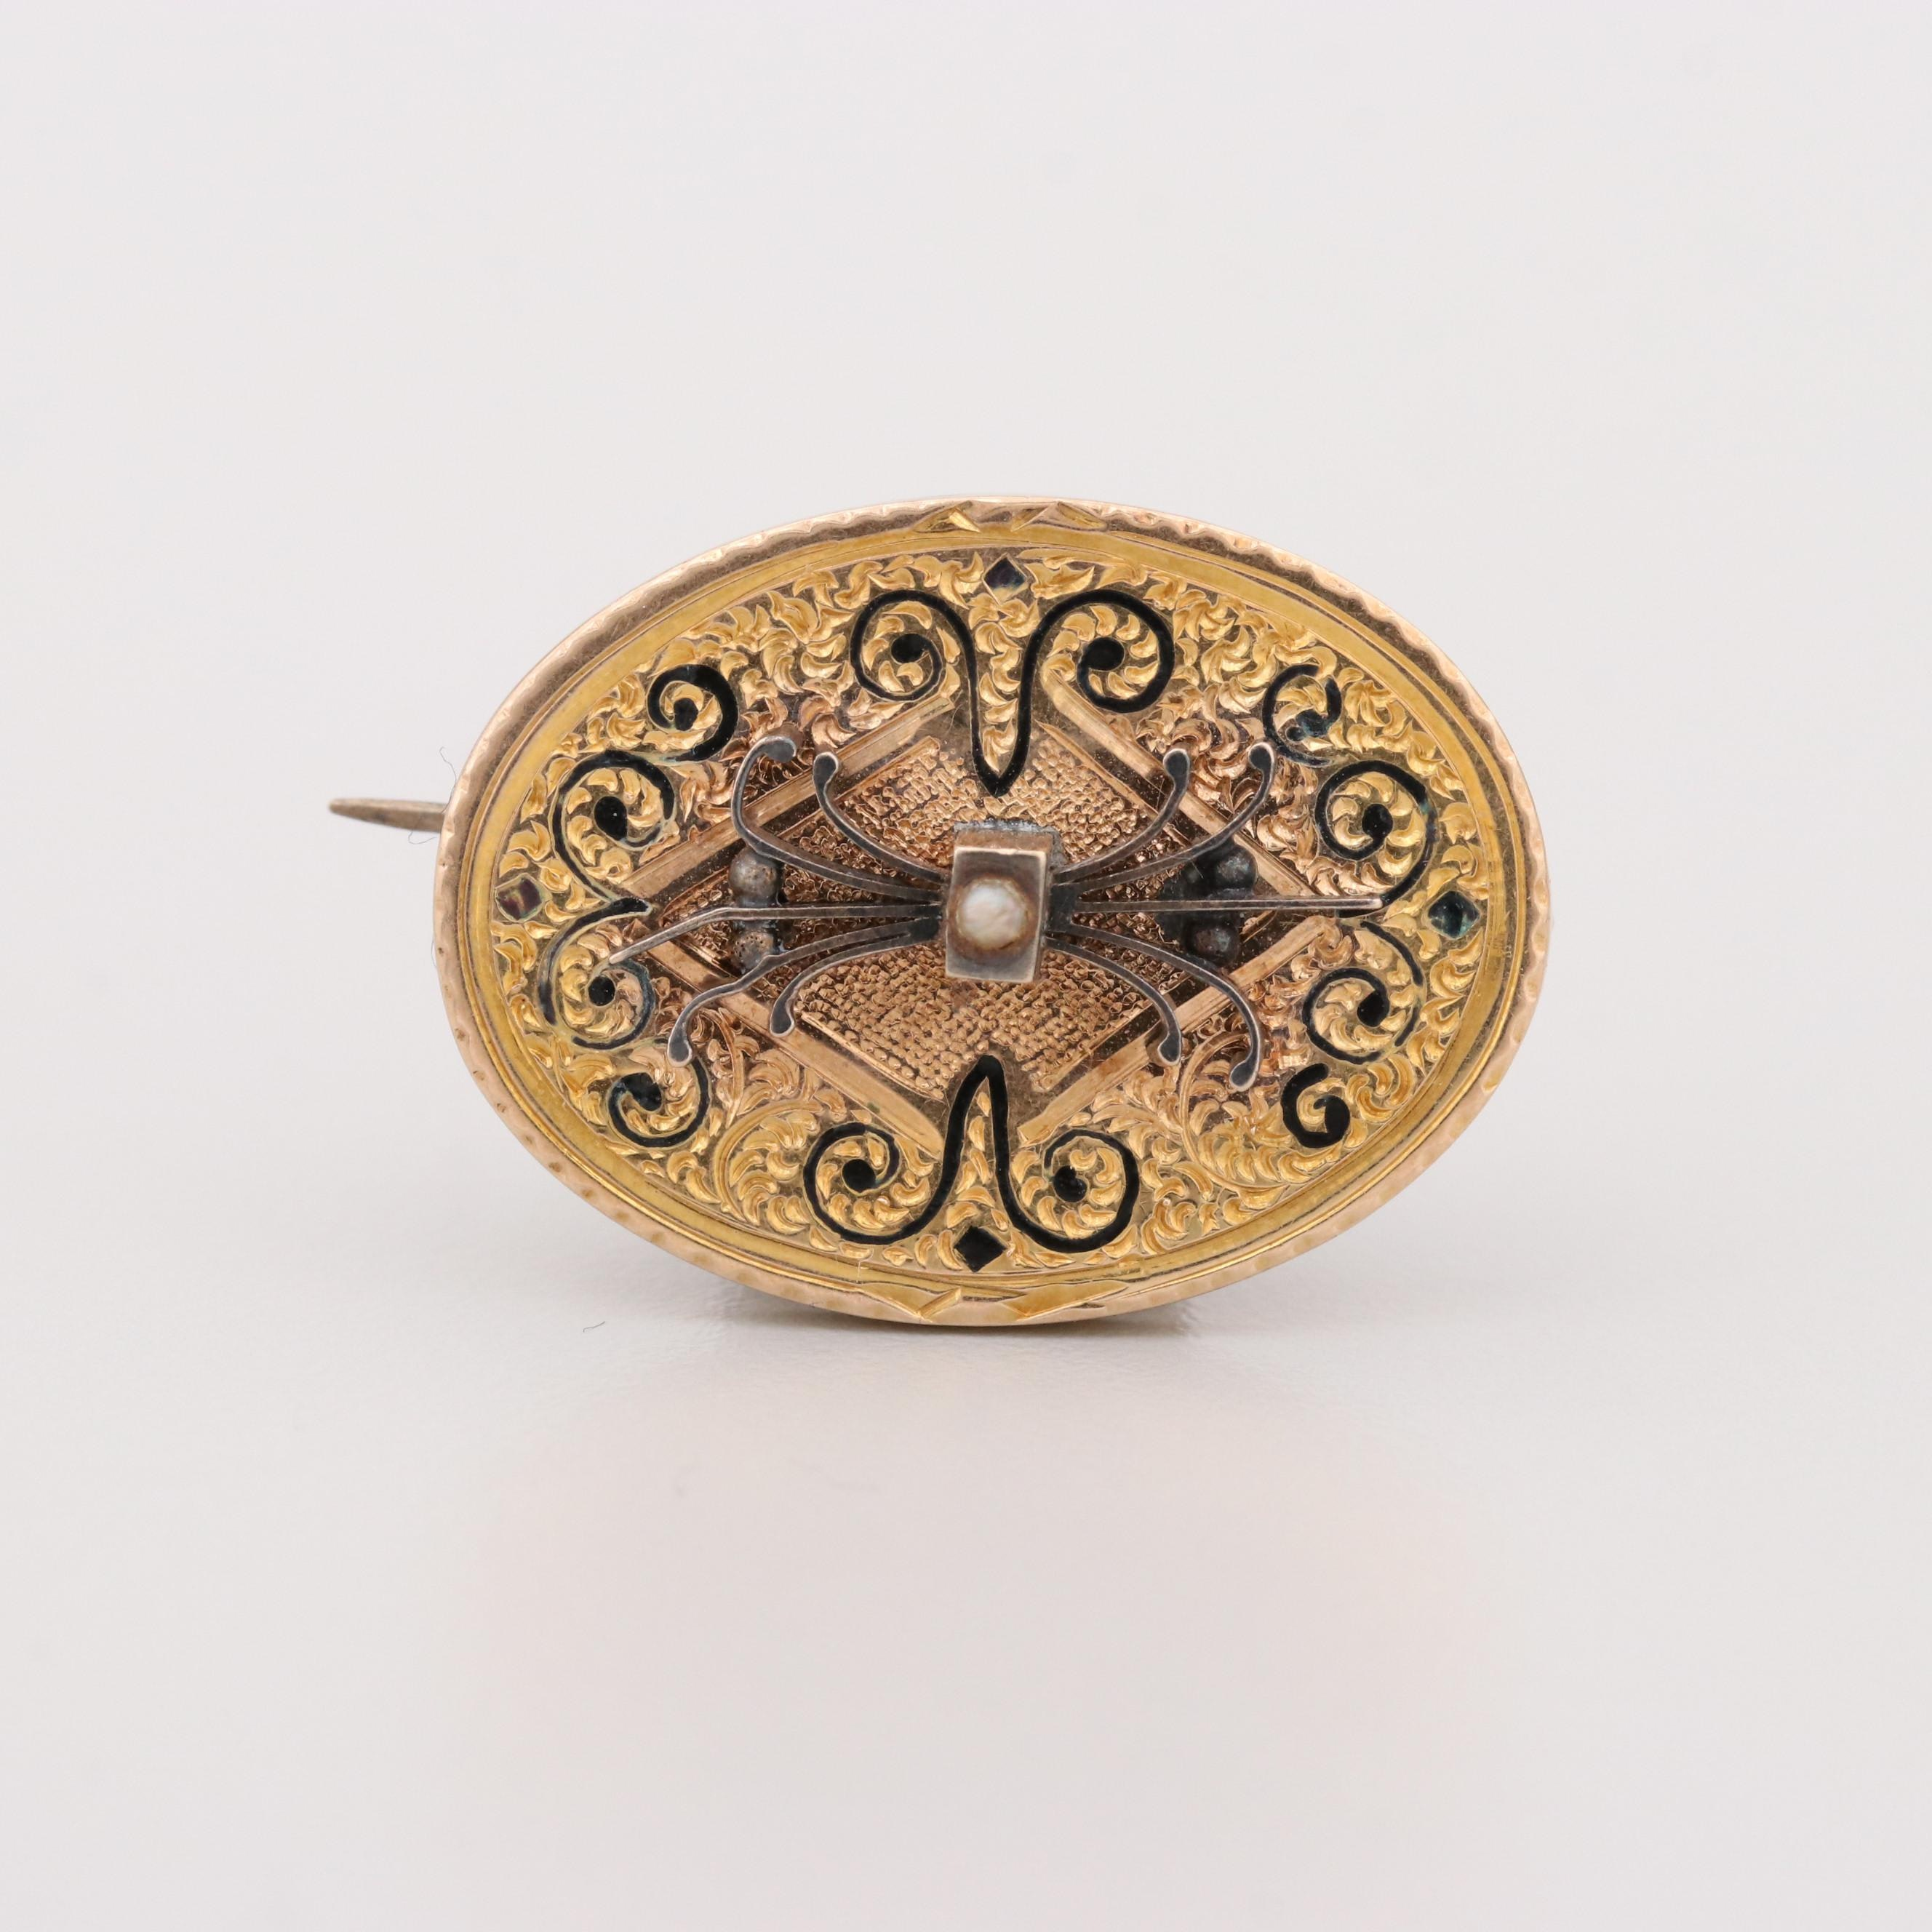 Circa 1900's Gold Tone Seed Pearl and Enamel Brooch